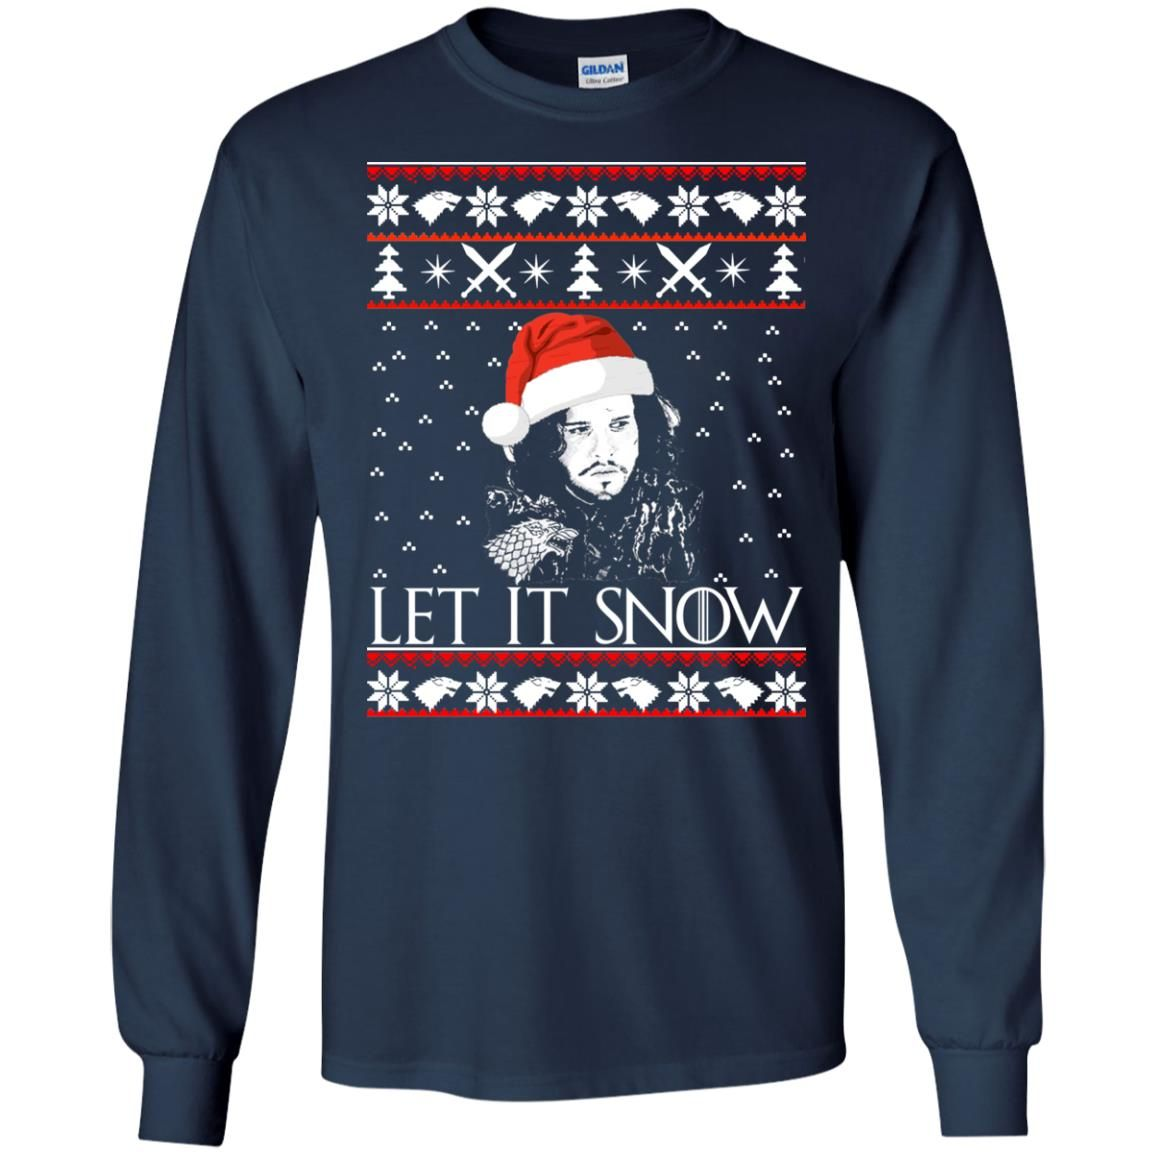 image 937 - Game of Thrones: Jon Snow let it Snow Christmas sweater, long sleeve